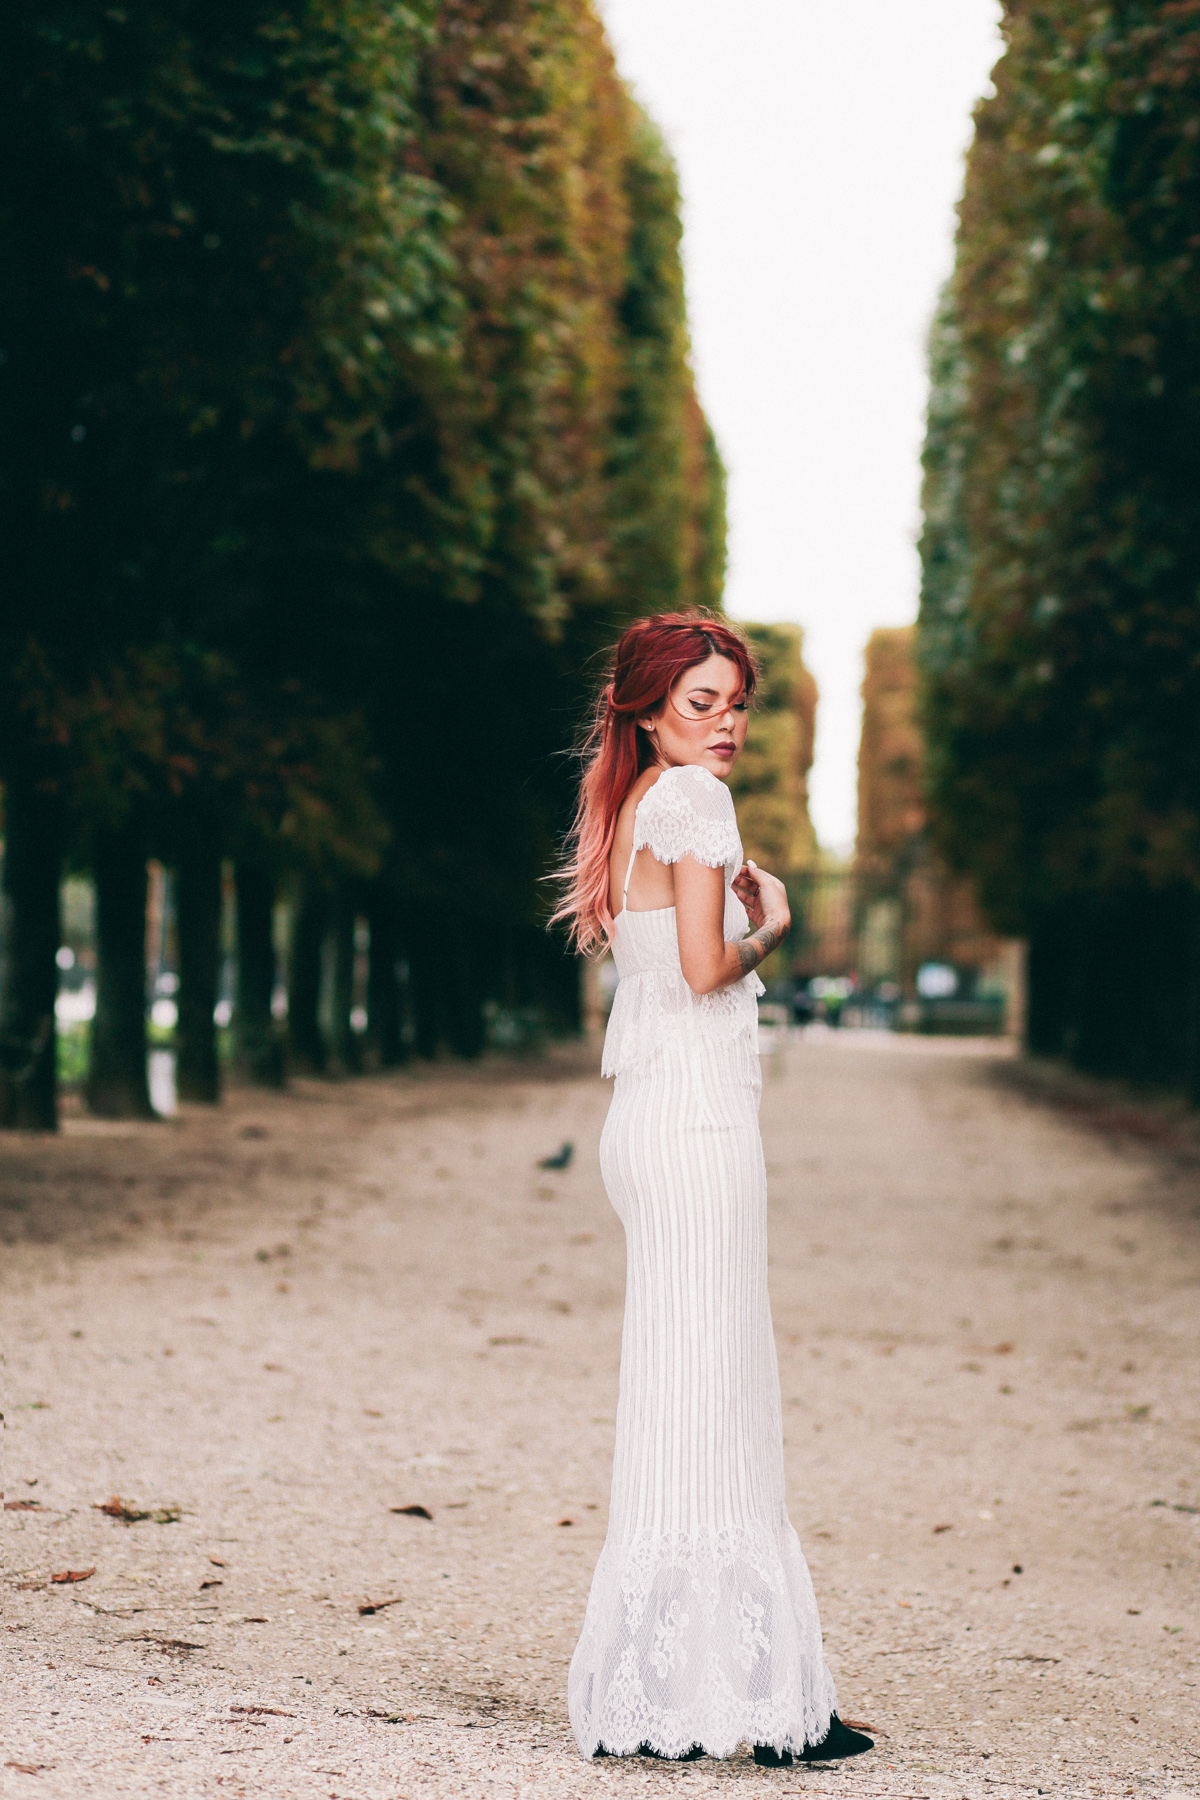 Le Happy wearing a lace Stone Cold Fox Dress at the Luxembourg Gardens